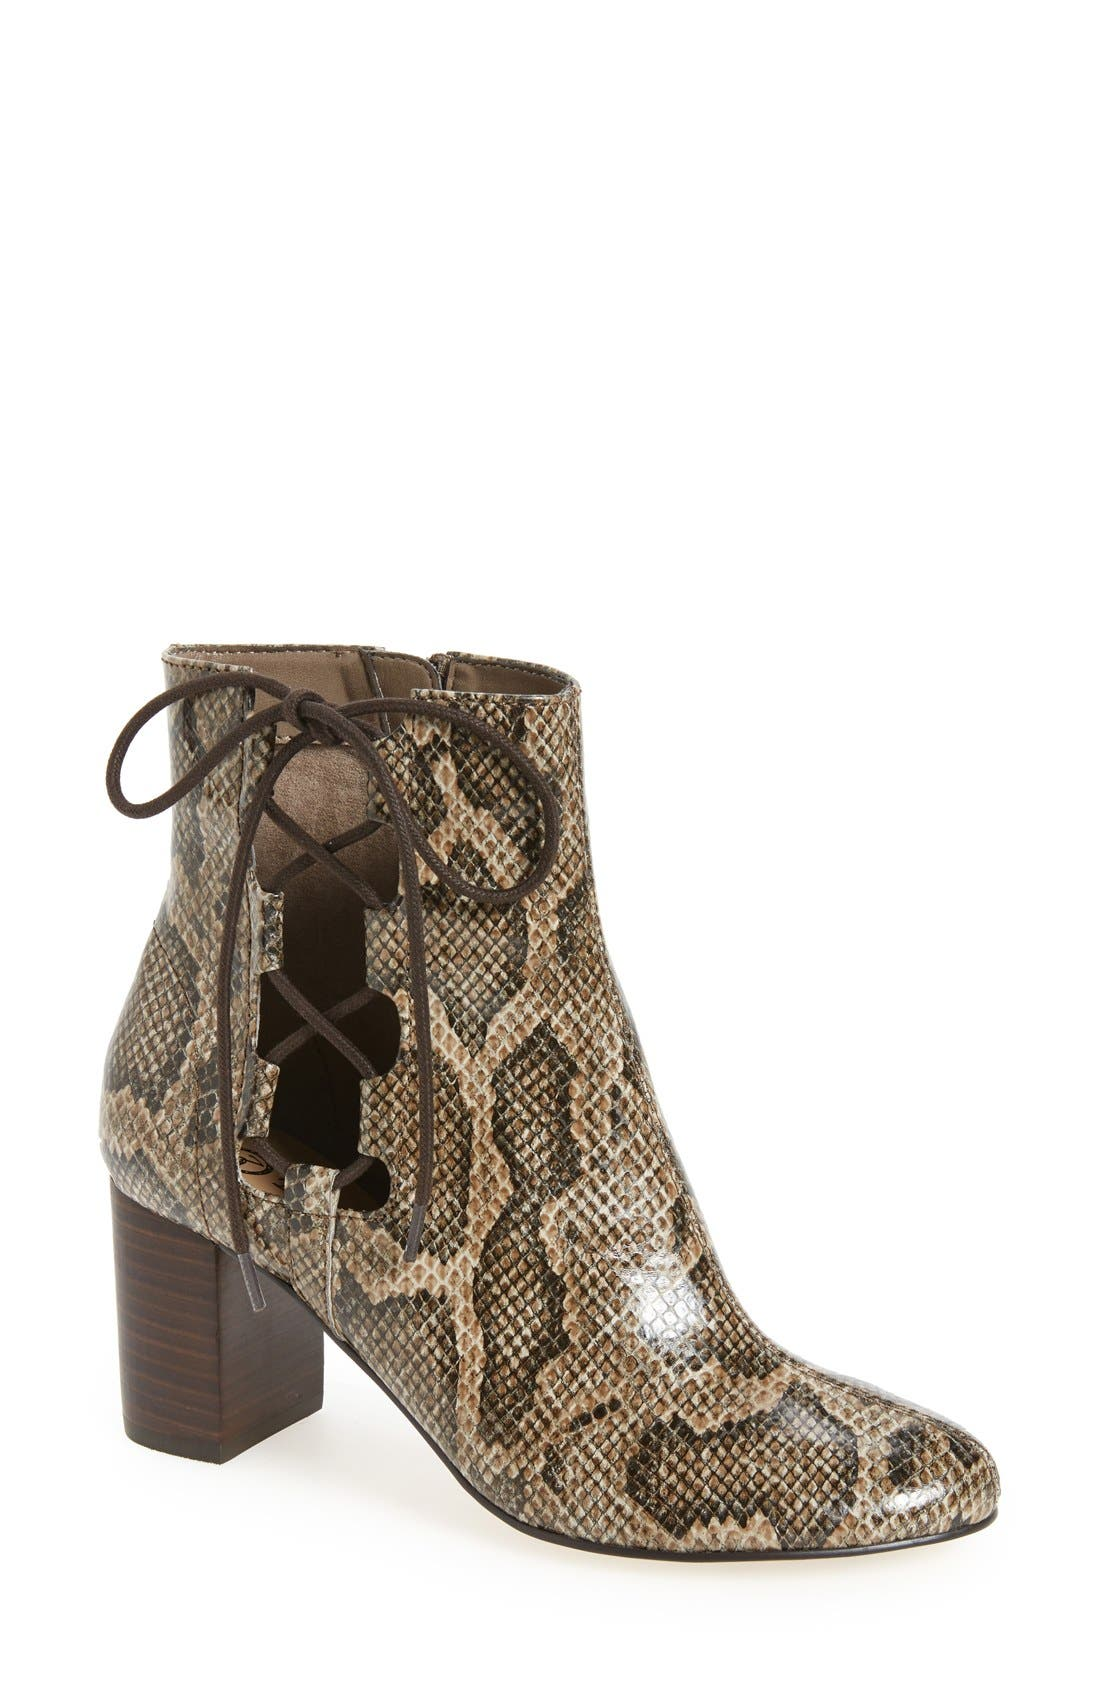 'Kirby' Bootie,                         Main,                         color, Natural Snake Print Leather